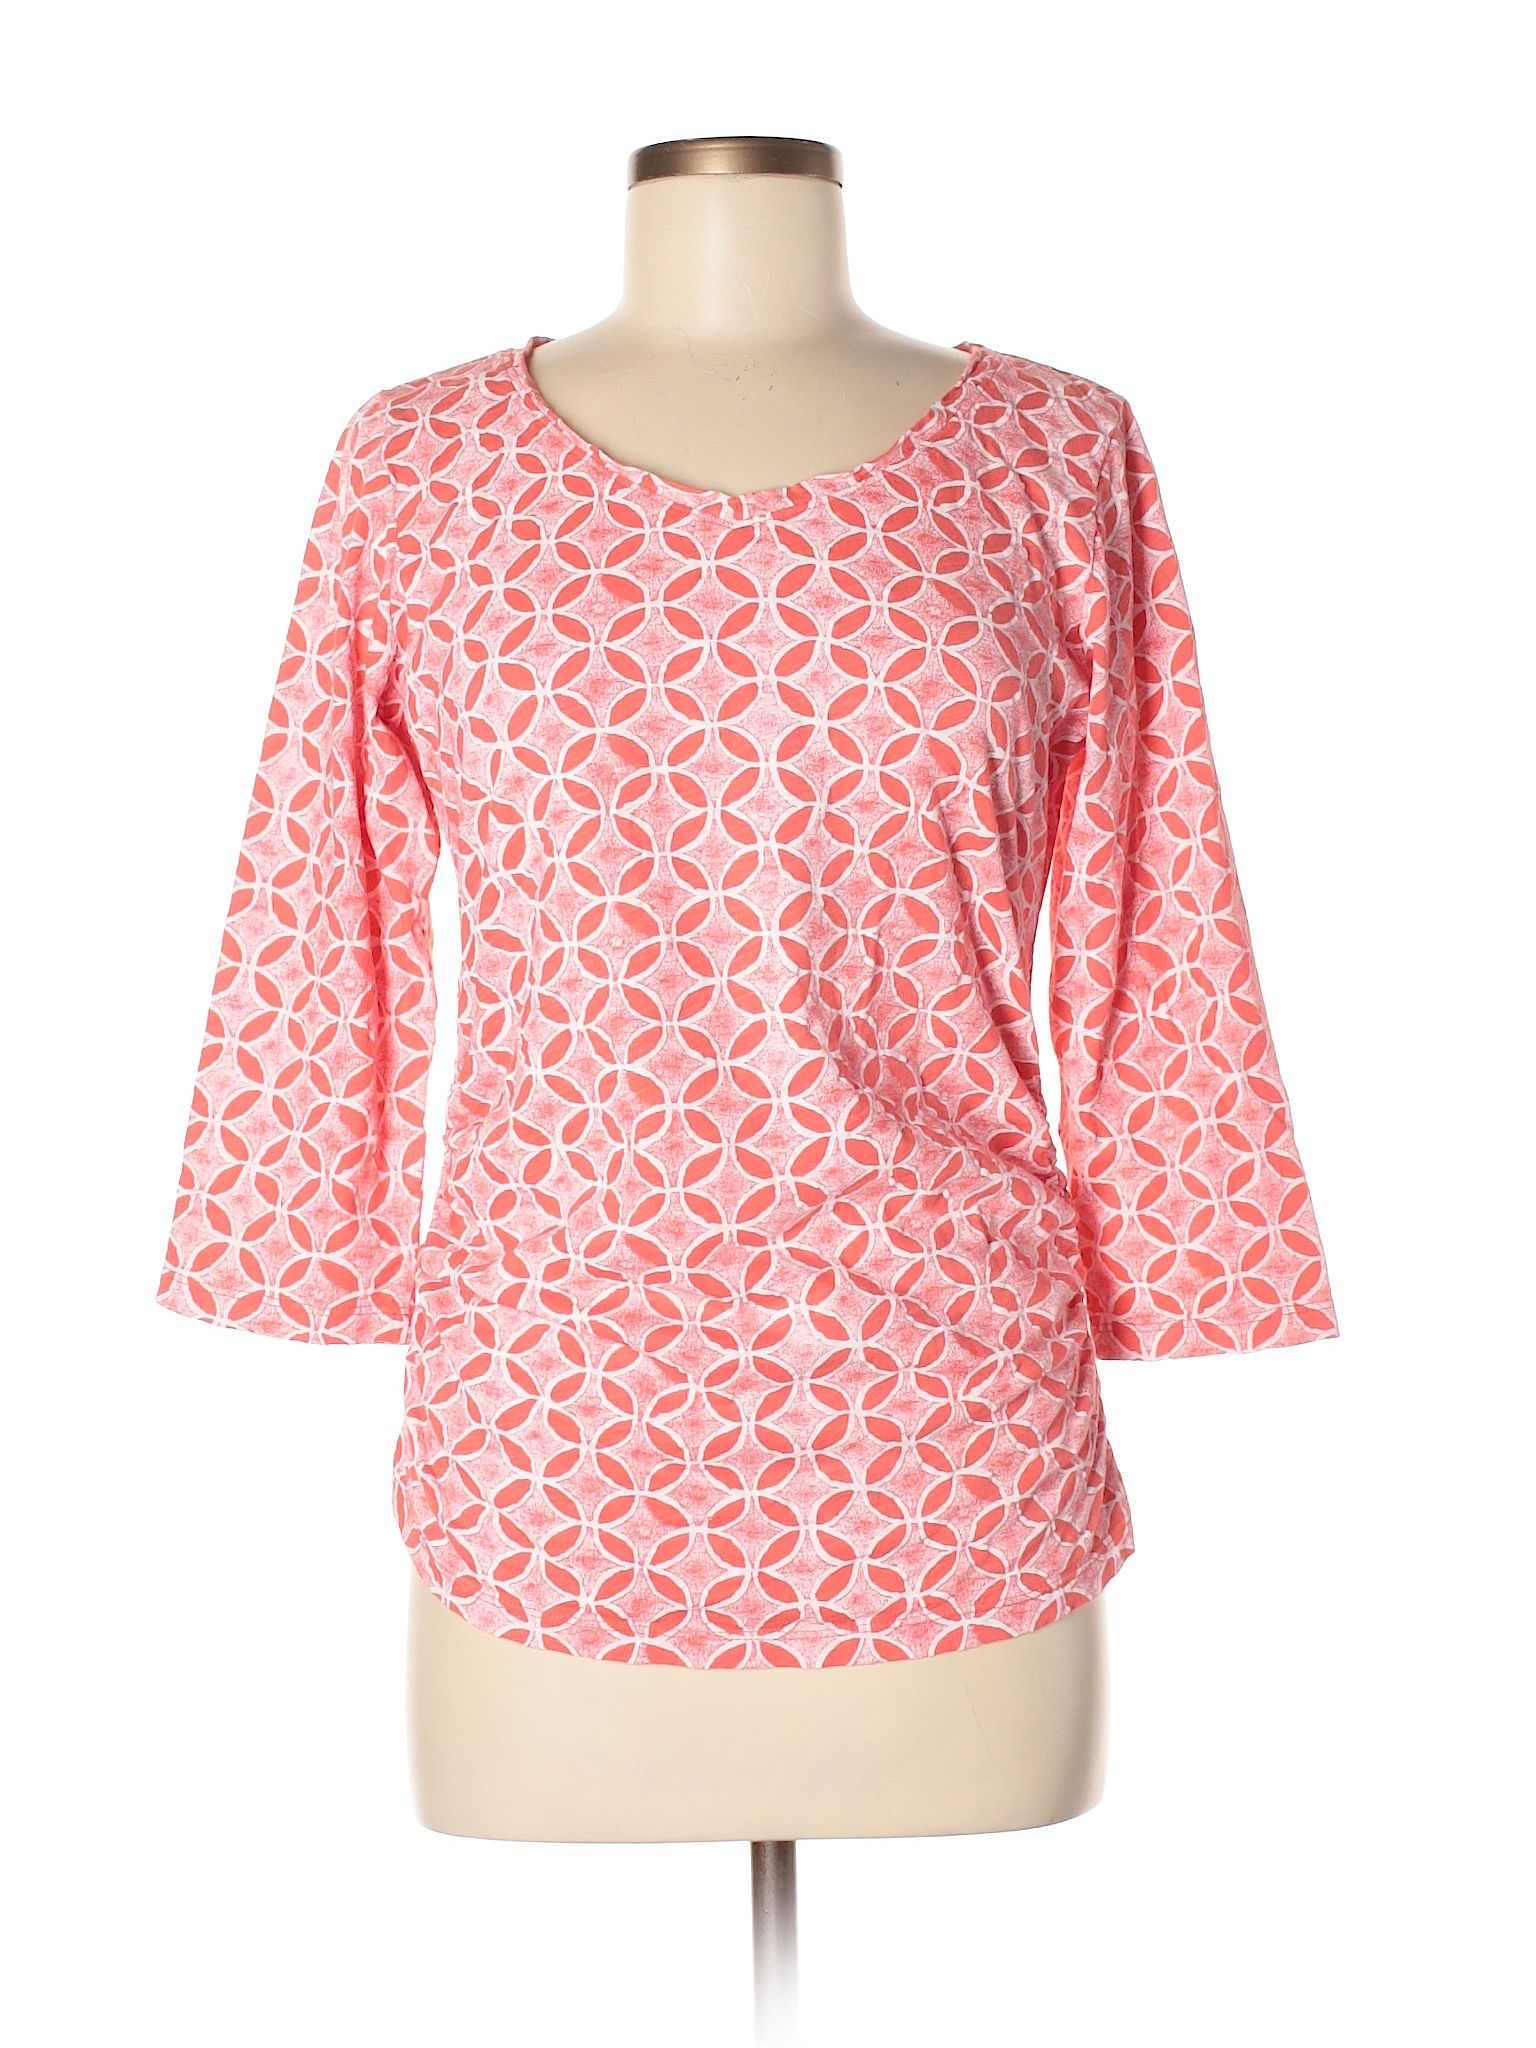 Fresh Produce 34 Sleeve Top Size 800 Coral Womens Tops